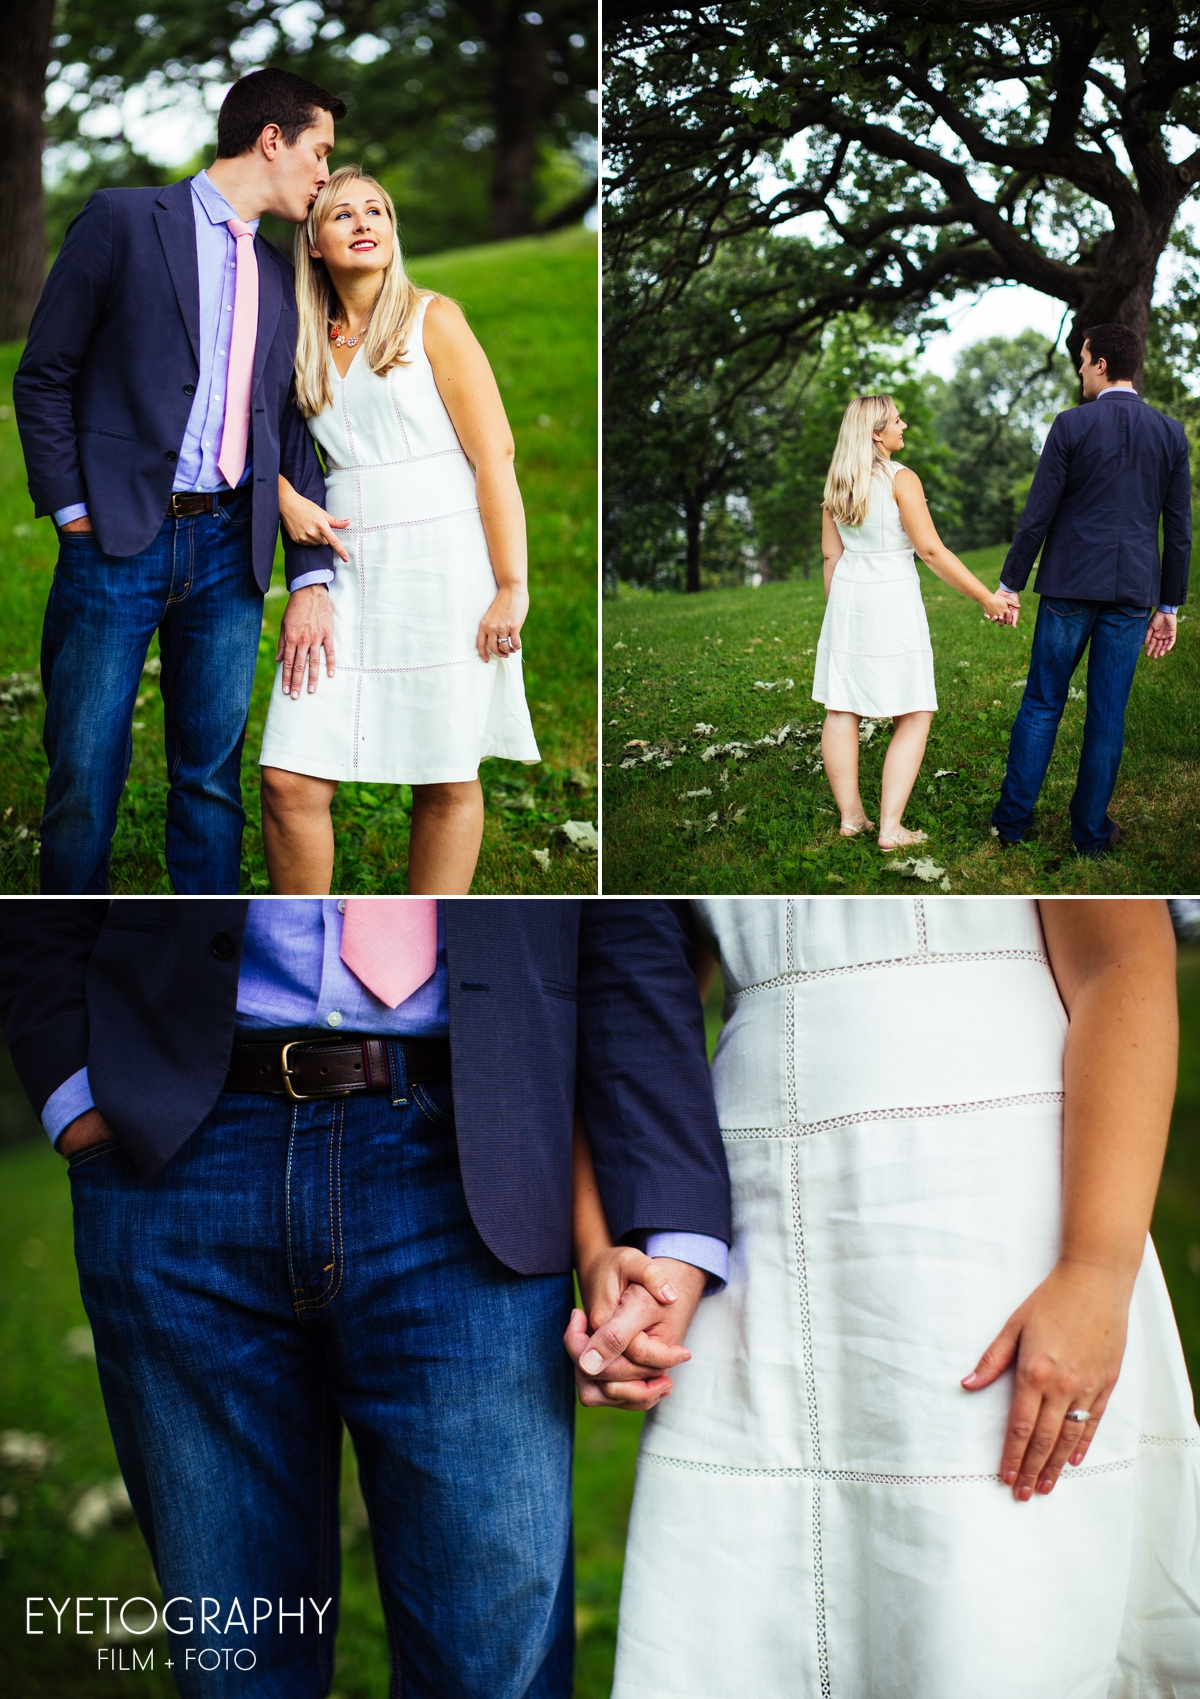 Minnehaha Falls Park Engagement Photography | Eyetography Film + Foto | Anna and Garrett 1